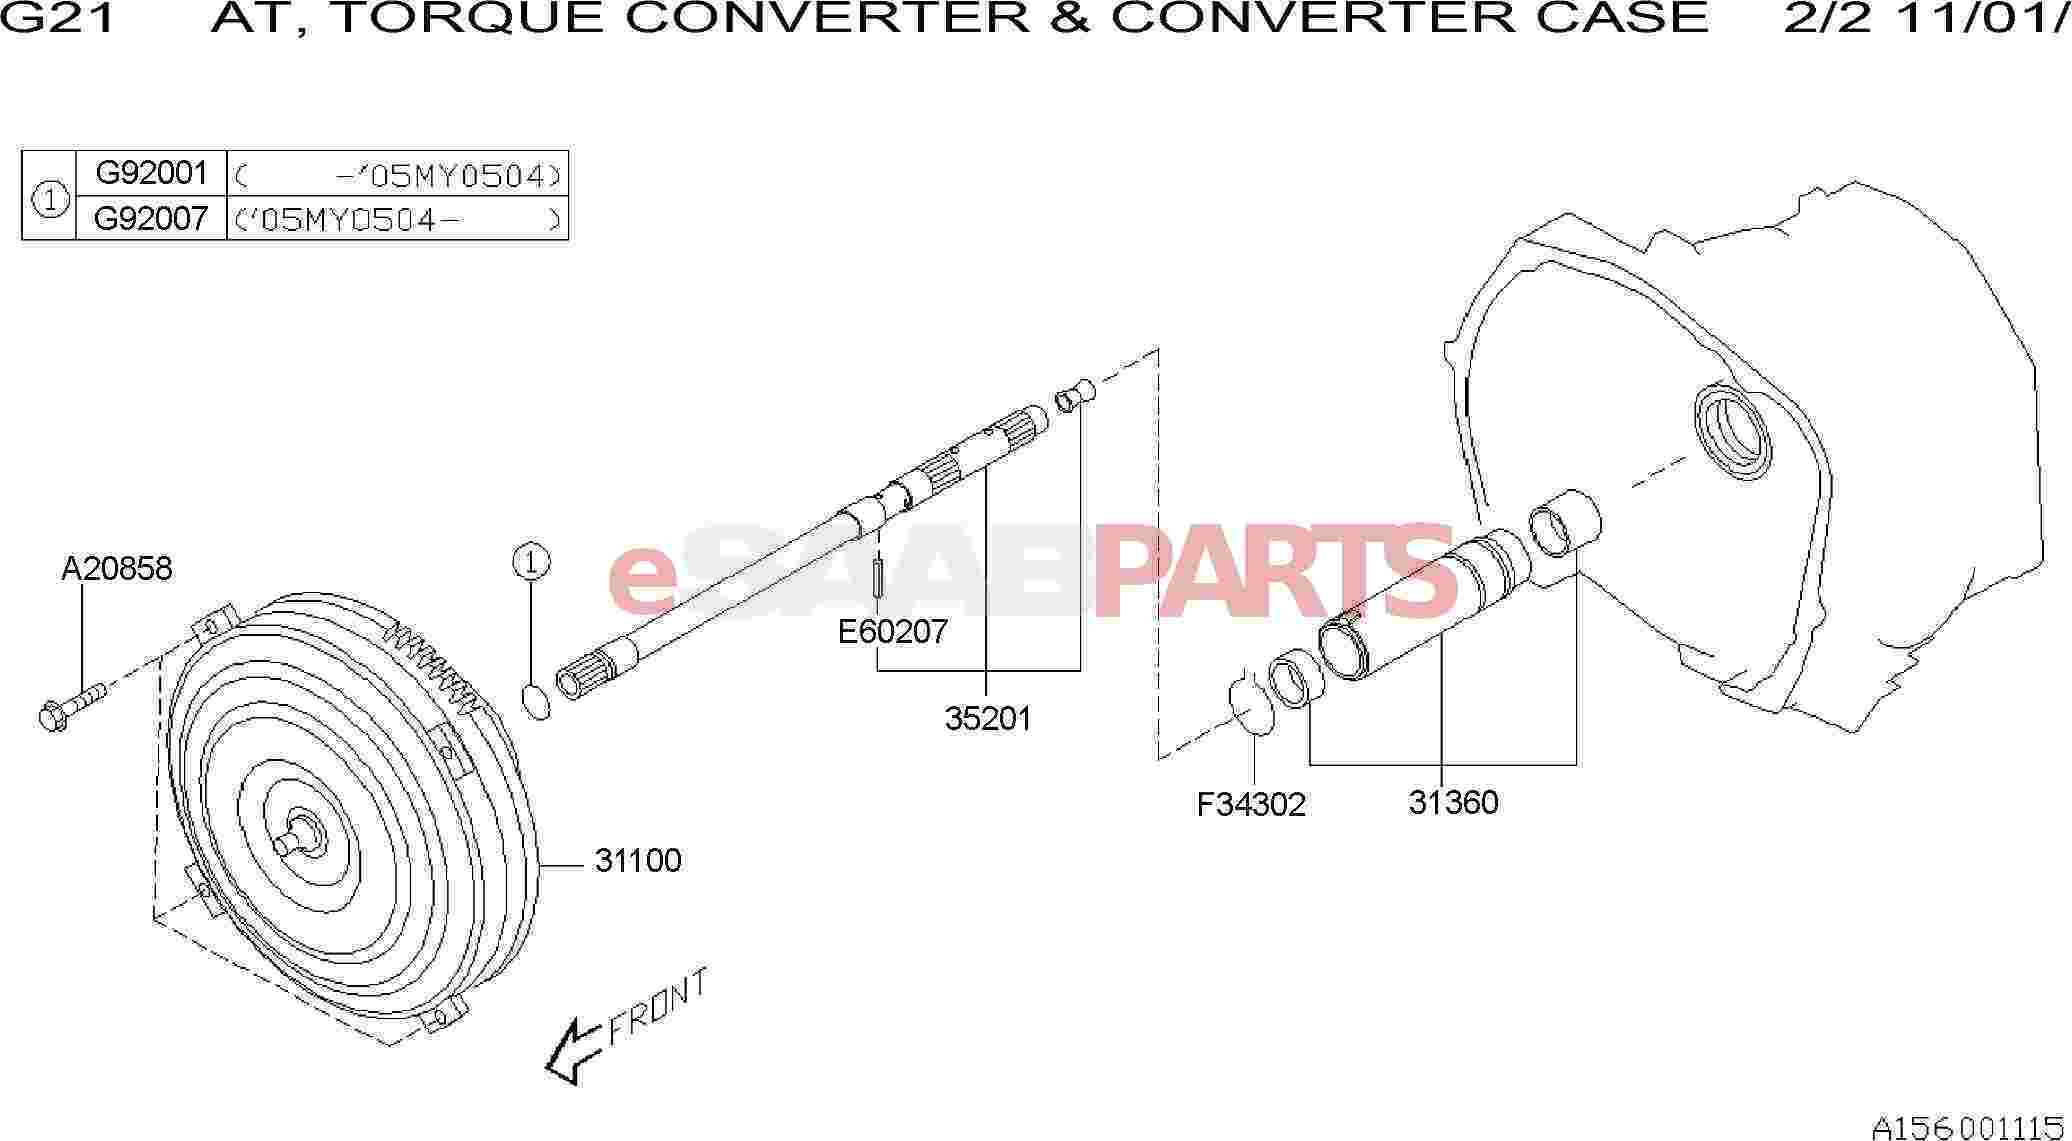 Saab Converter Assembly Torque